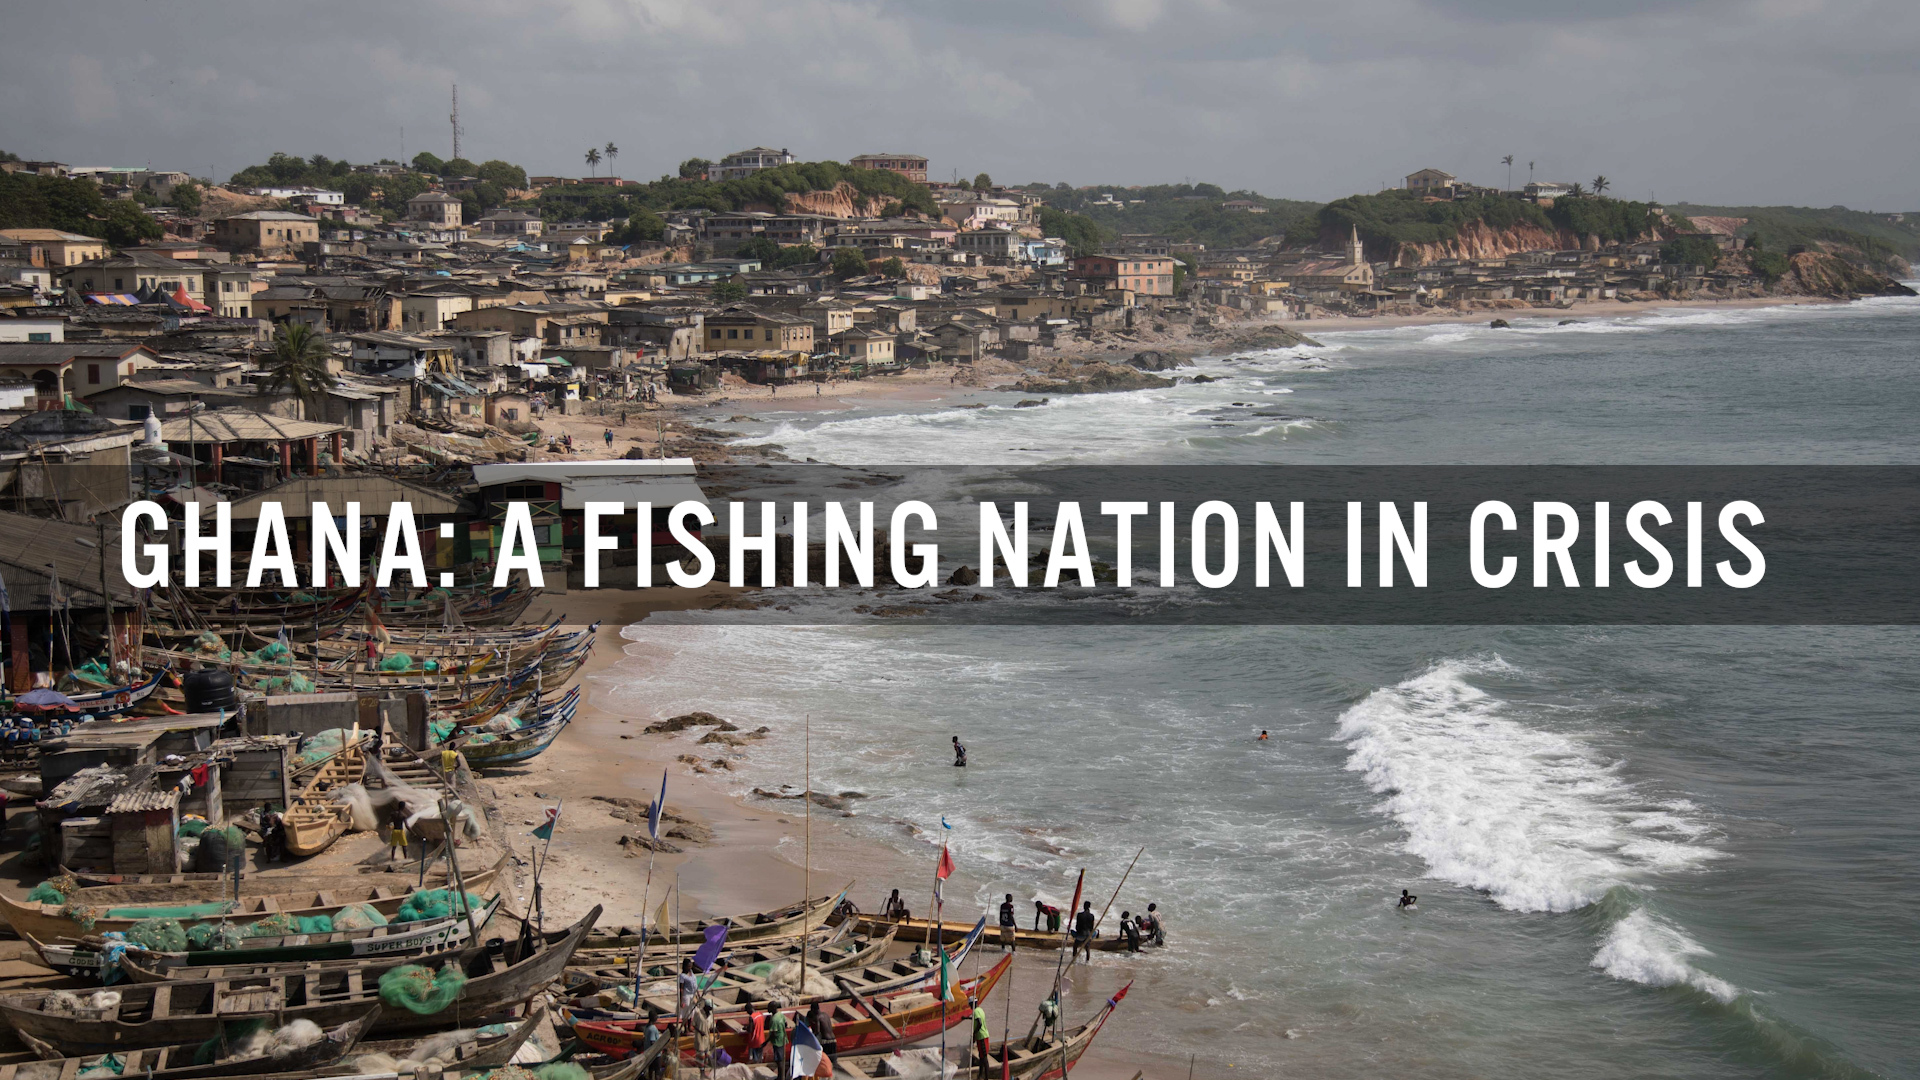 Ghana: A Fishing Nation in Crisis